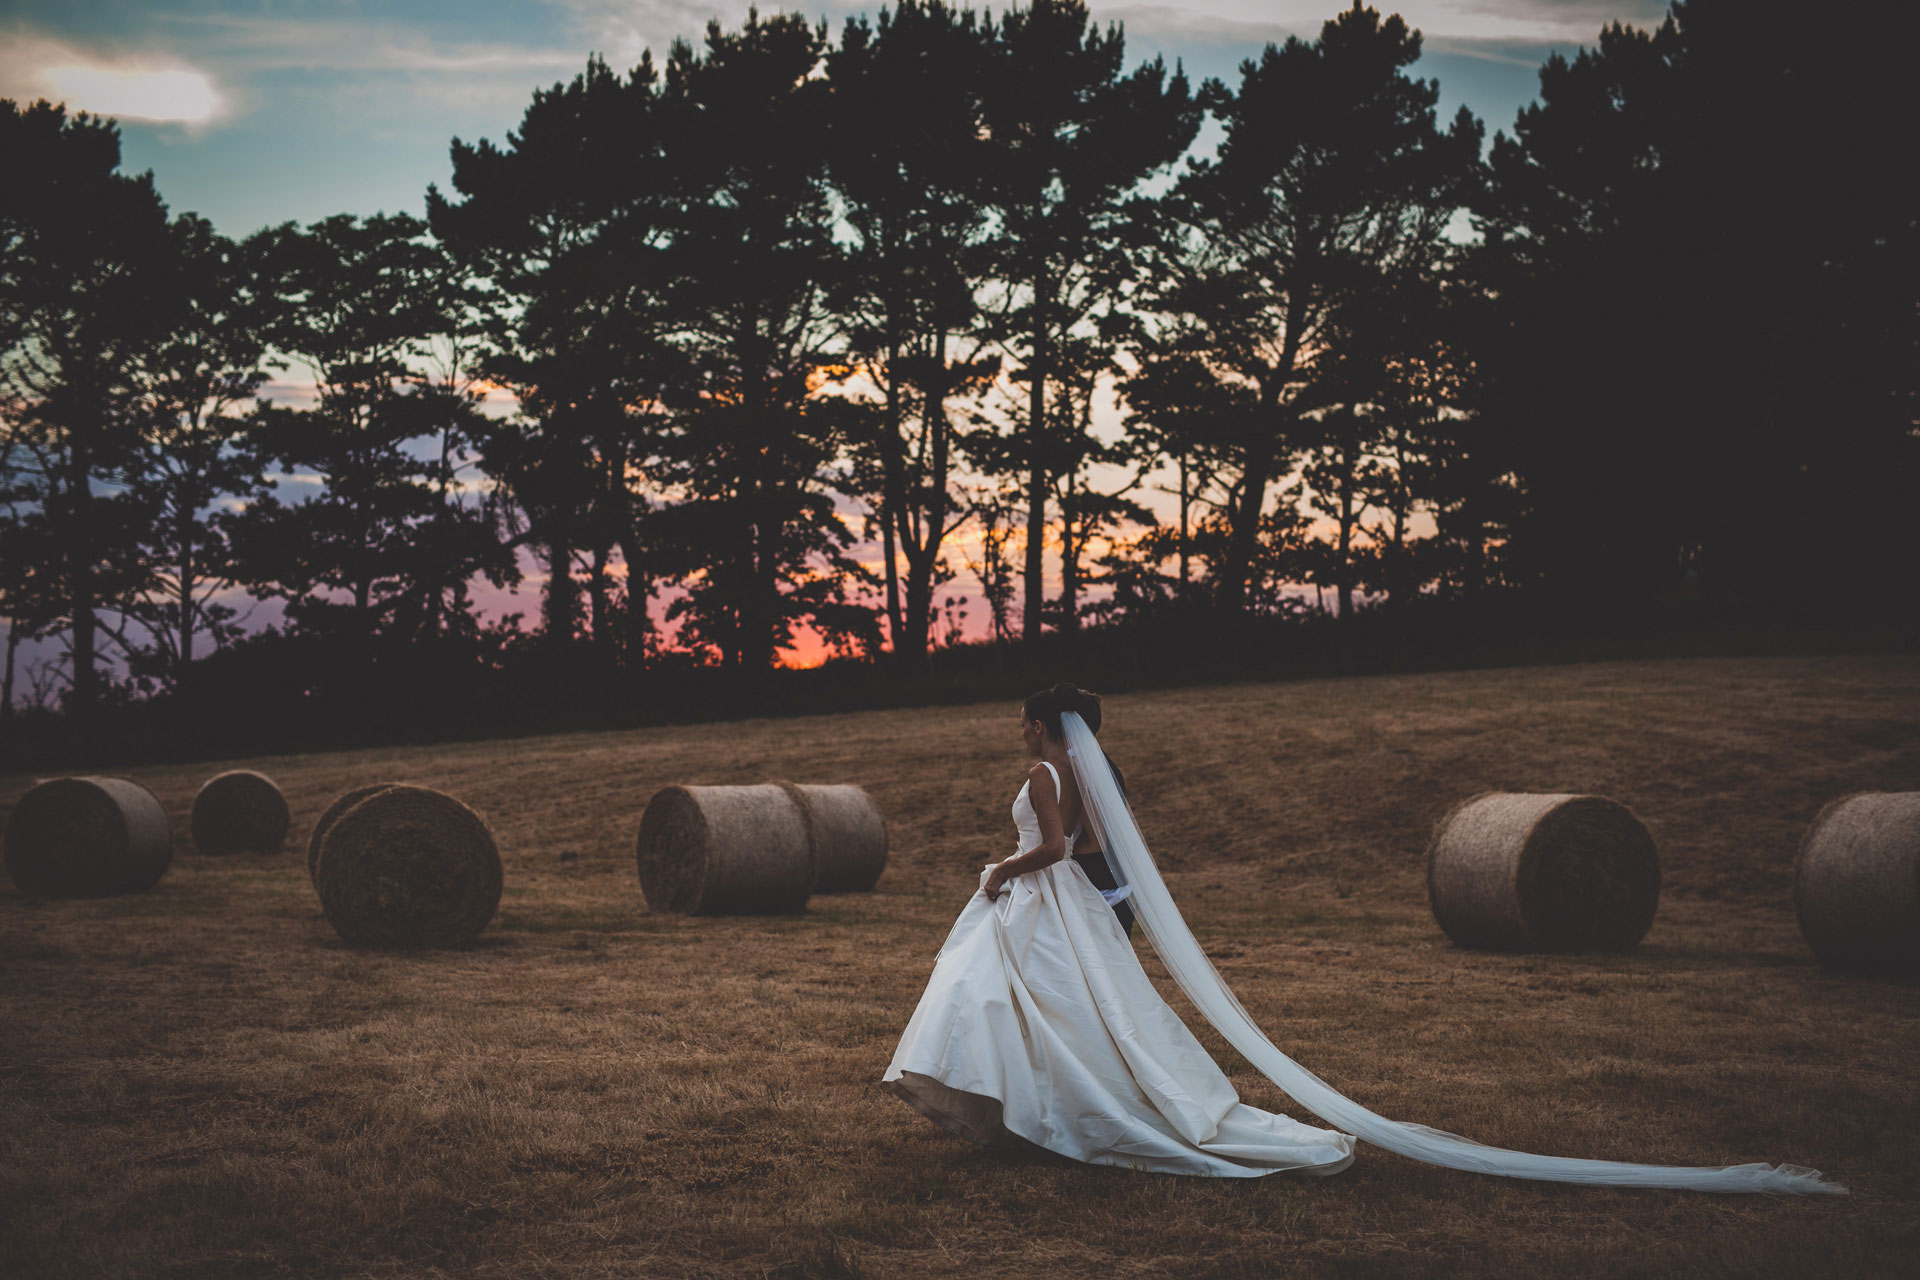 sunset-photoshoot-with-bride-and-groom